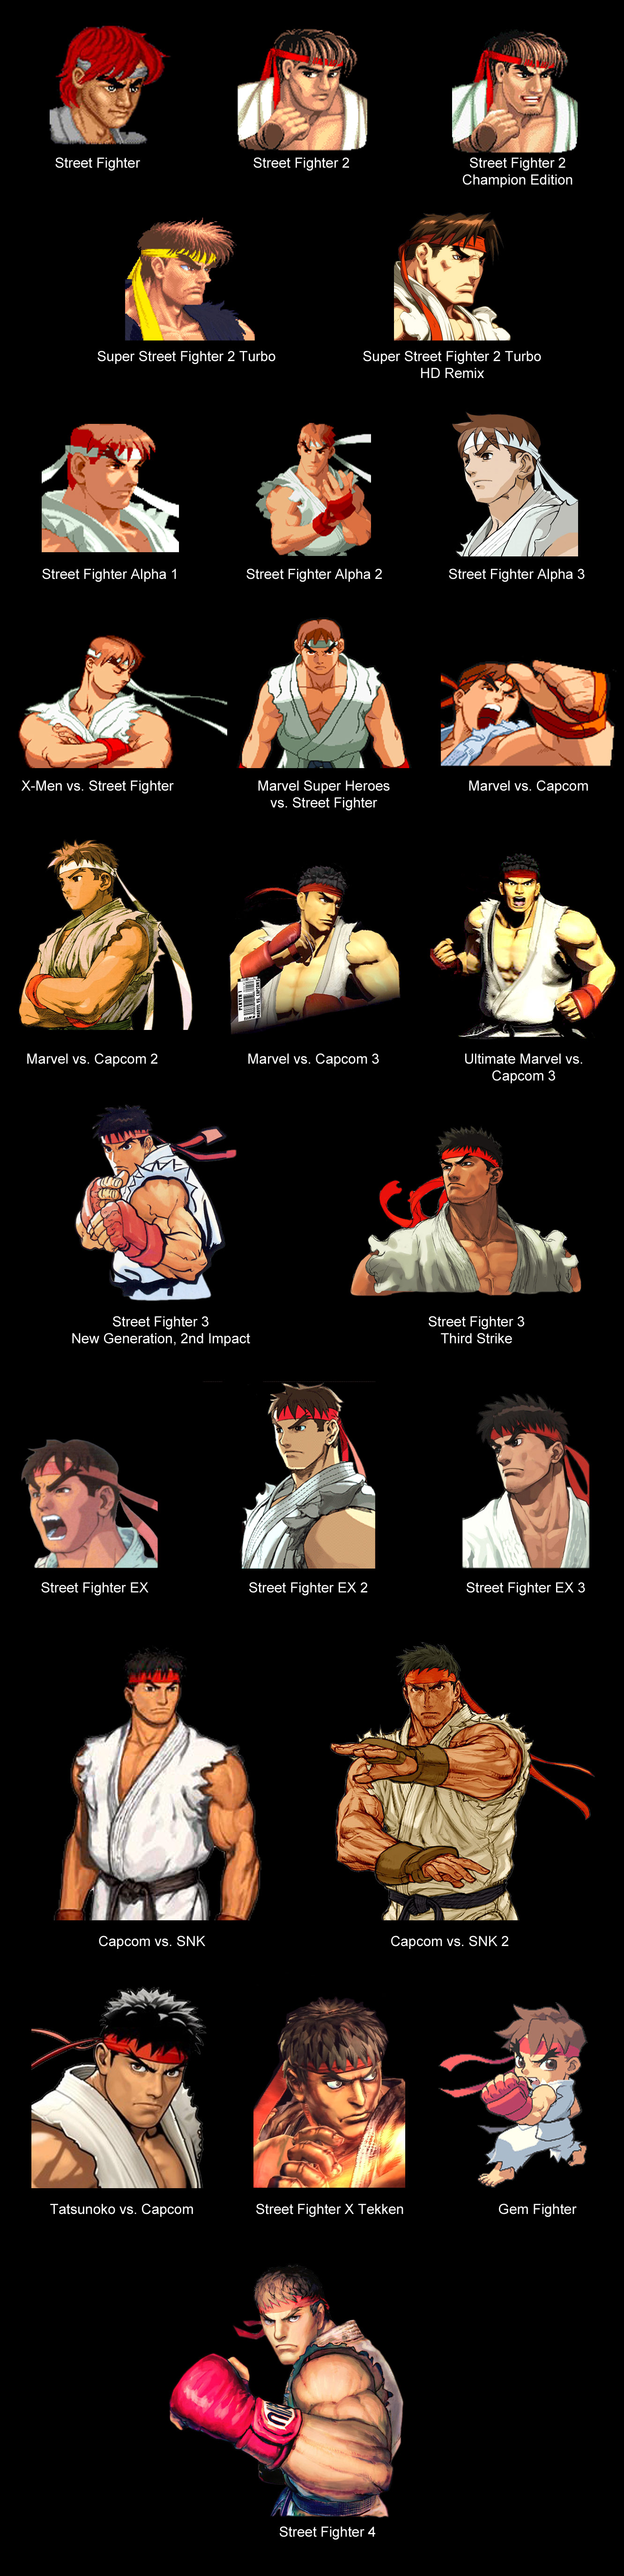 Visual history of Ryu in Street Fighter, Vs. and other Capcom fighting games